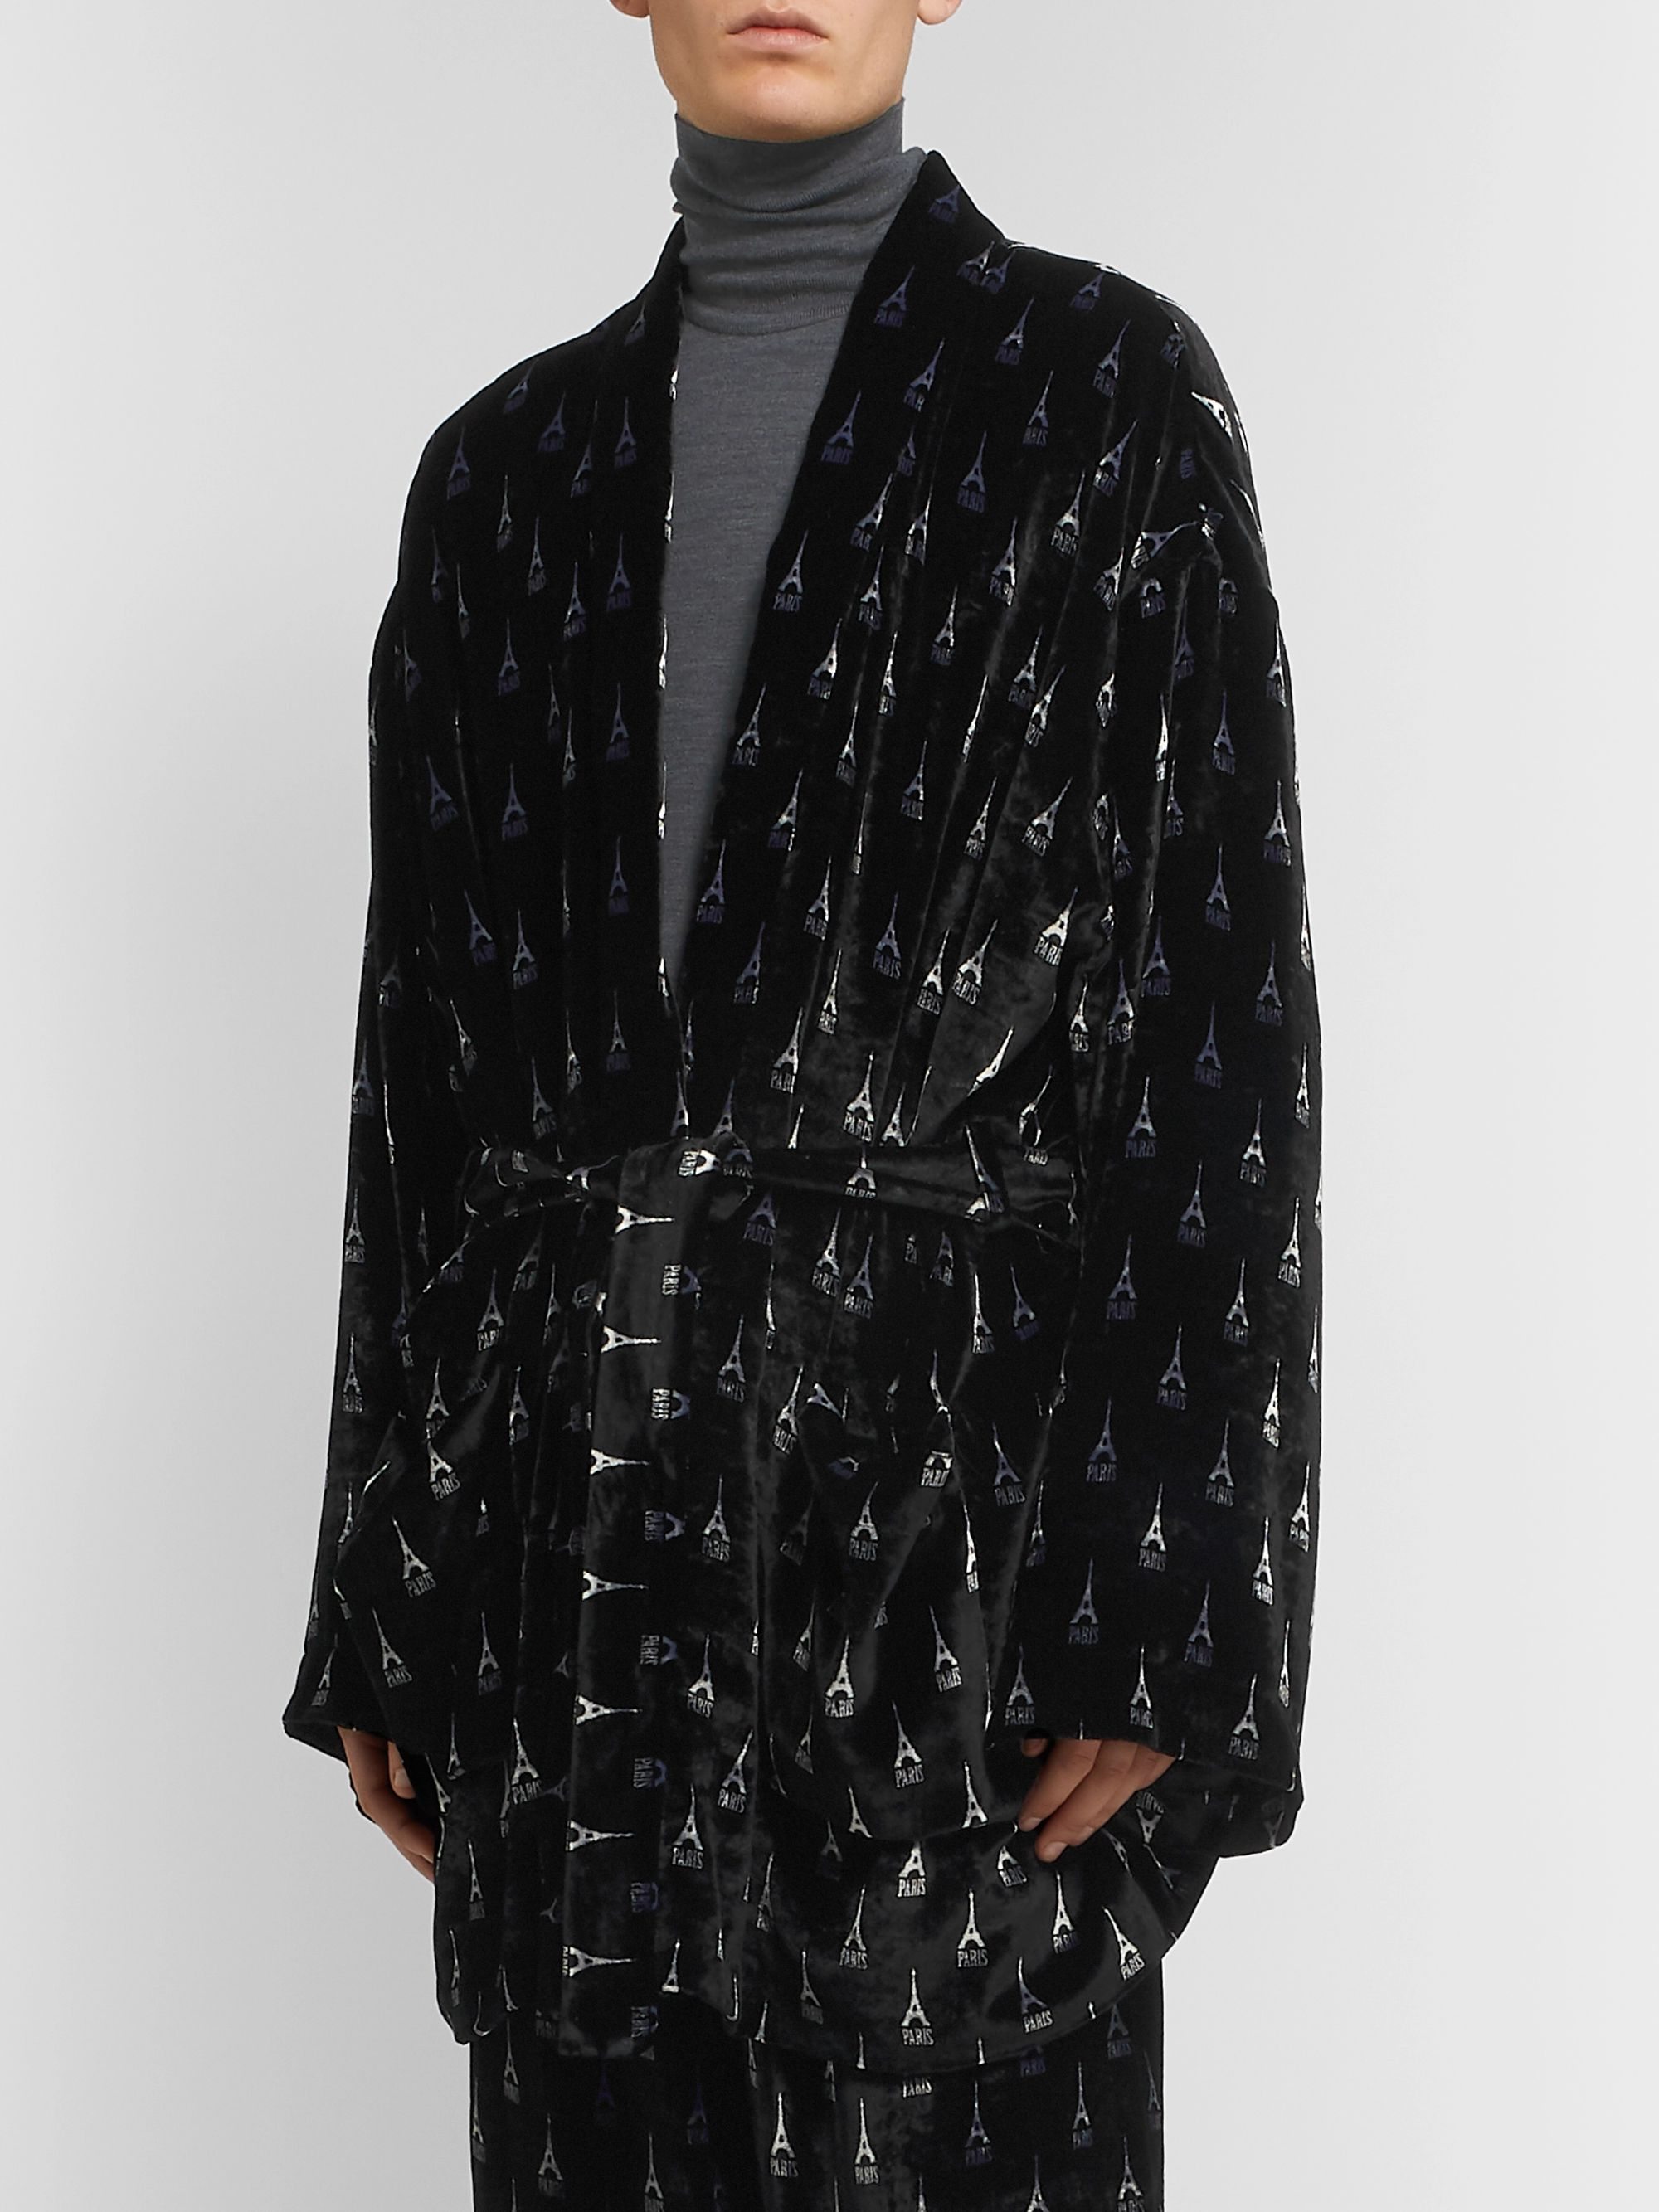 Balenciaga Printed Velour Jacket